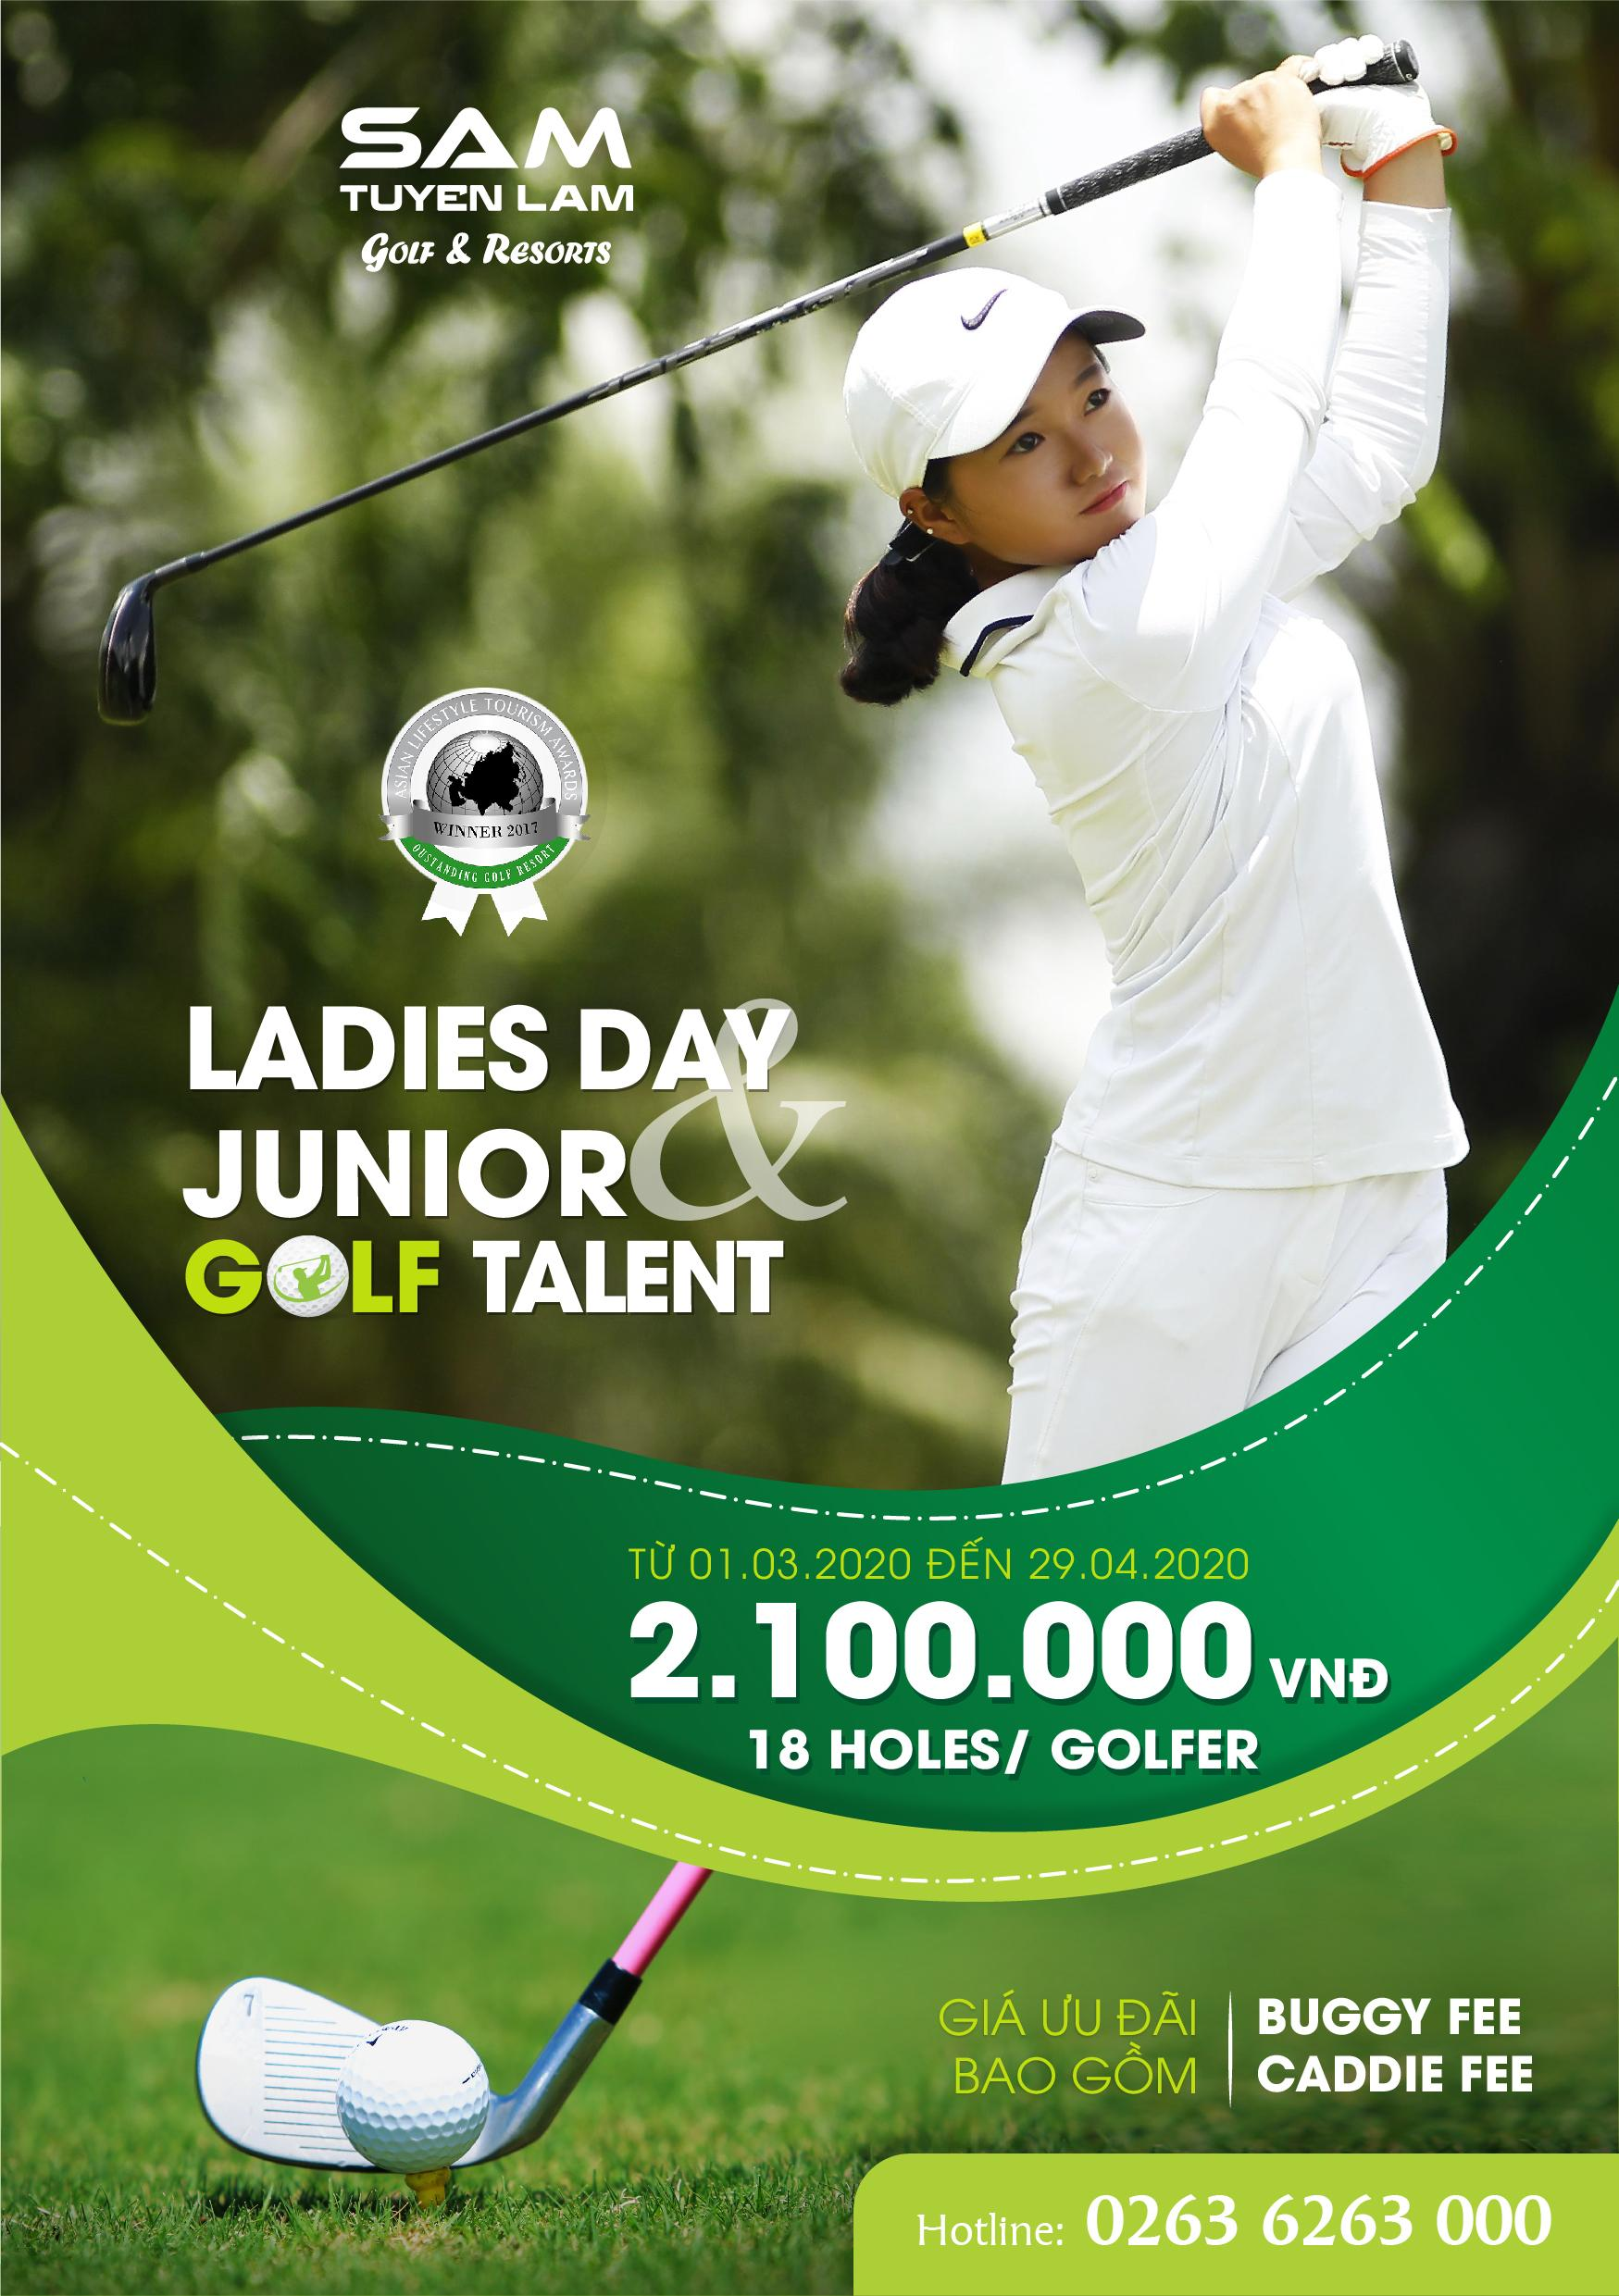 LADDIES & JUNIOR'S GOLF PROMOTION